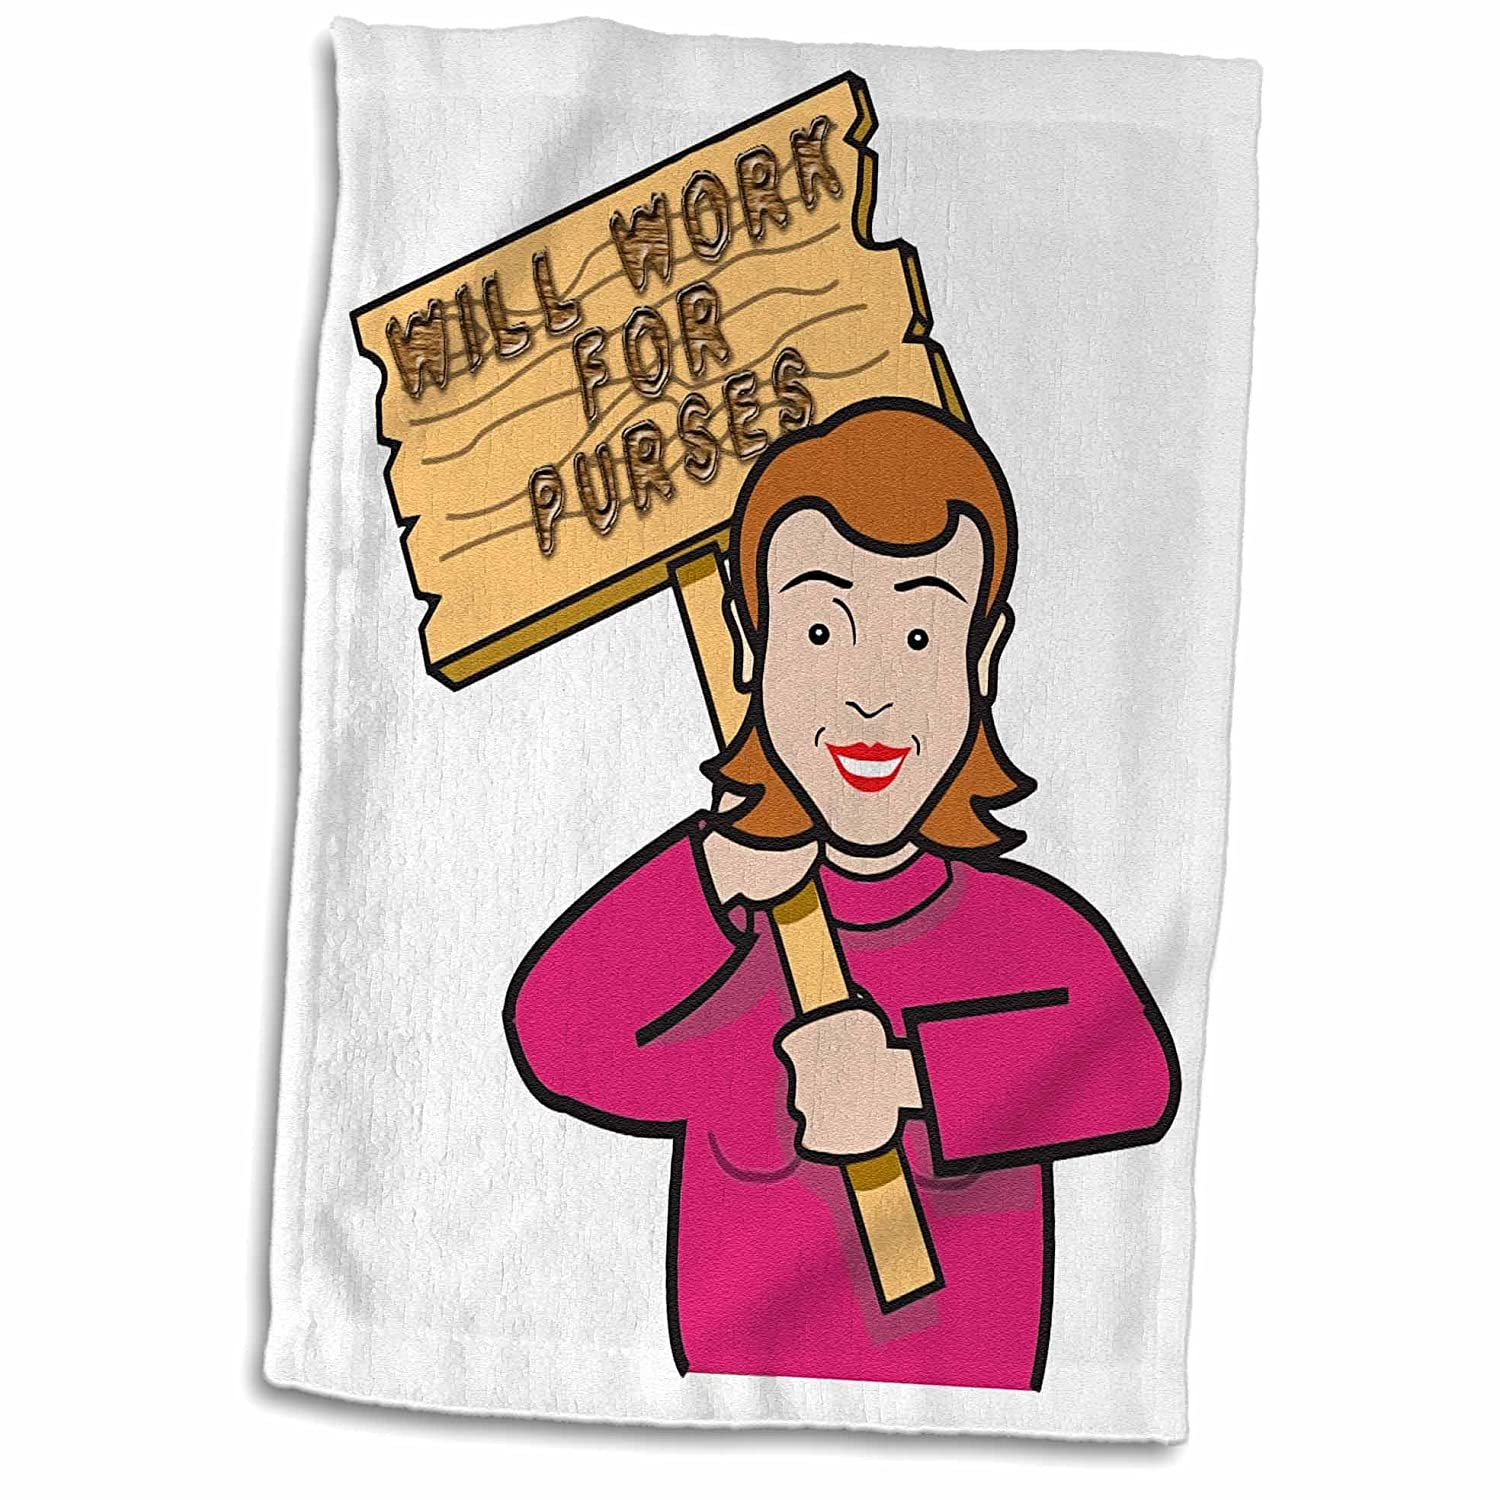 3D Rose Funny Humorous Woman Girl with A Sign Will Work for Purses Hand//Sports Towel 15 x 22 Multicolor